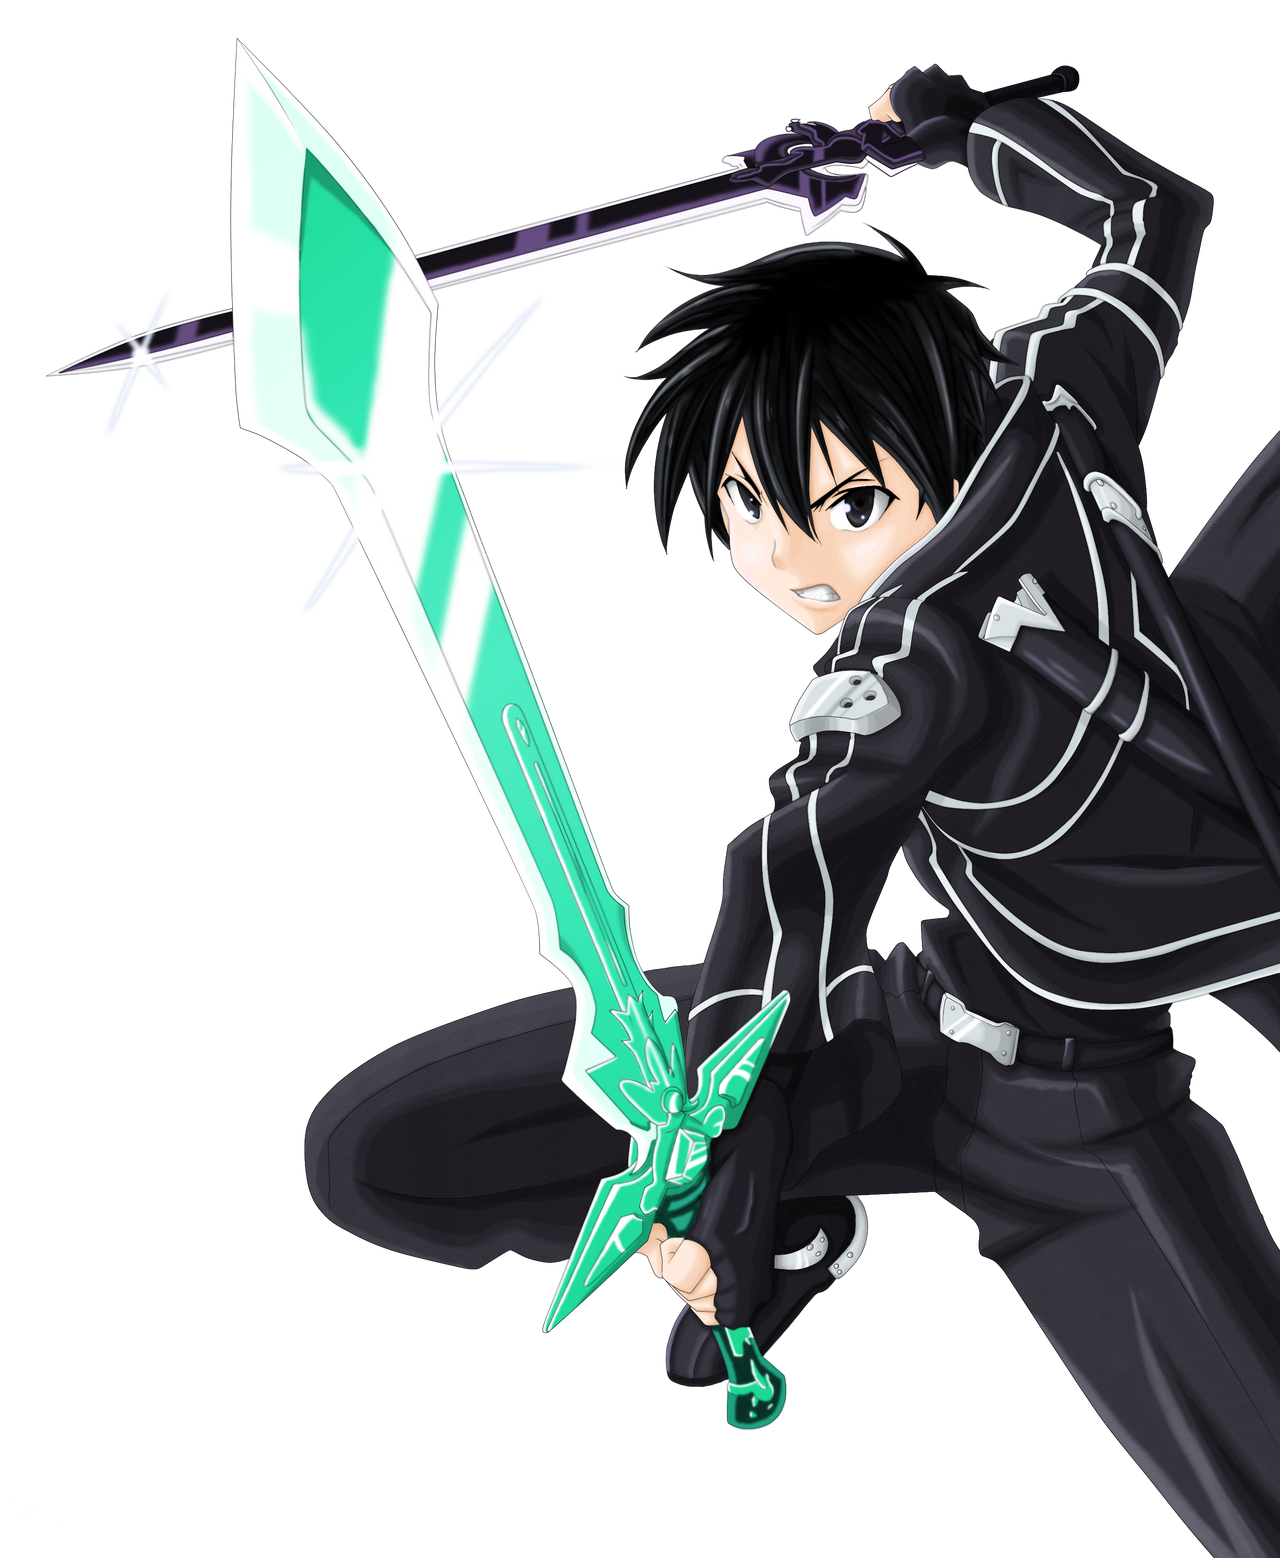 Anime Characters Use Dual Swords : Wip kirito dual blade by tobeyd on deviantart